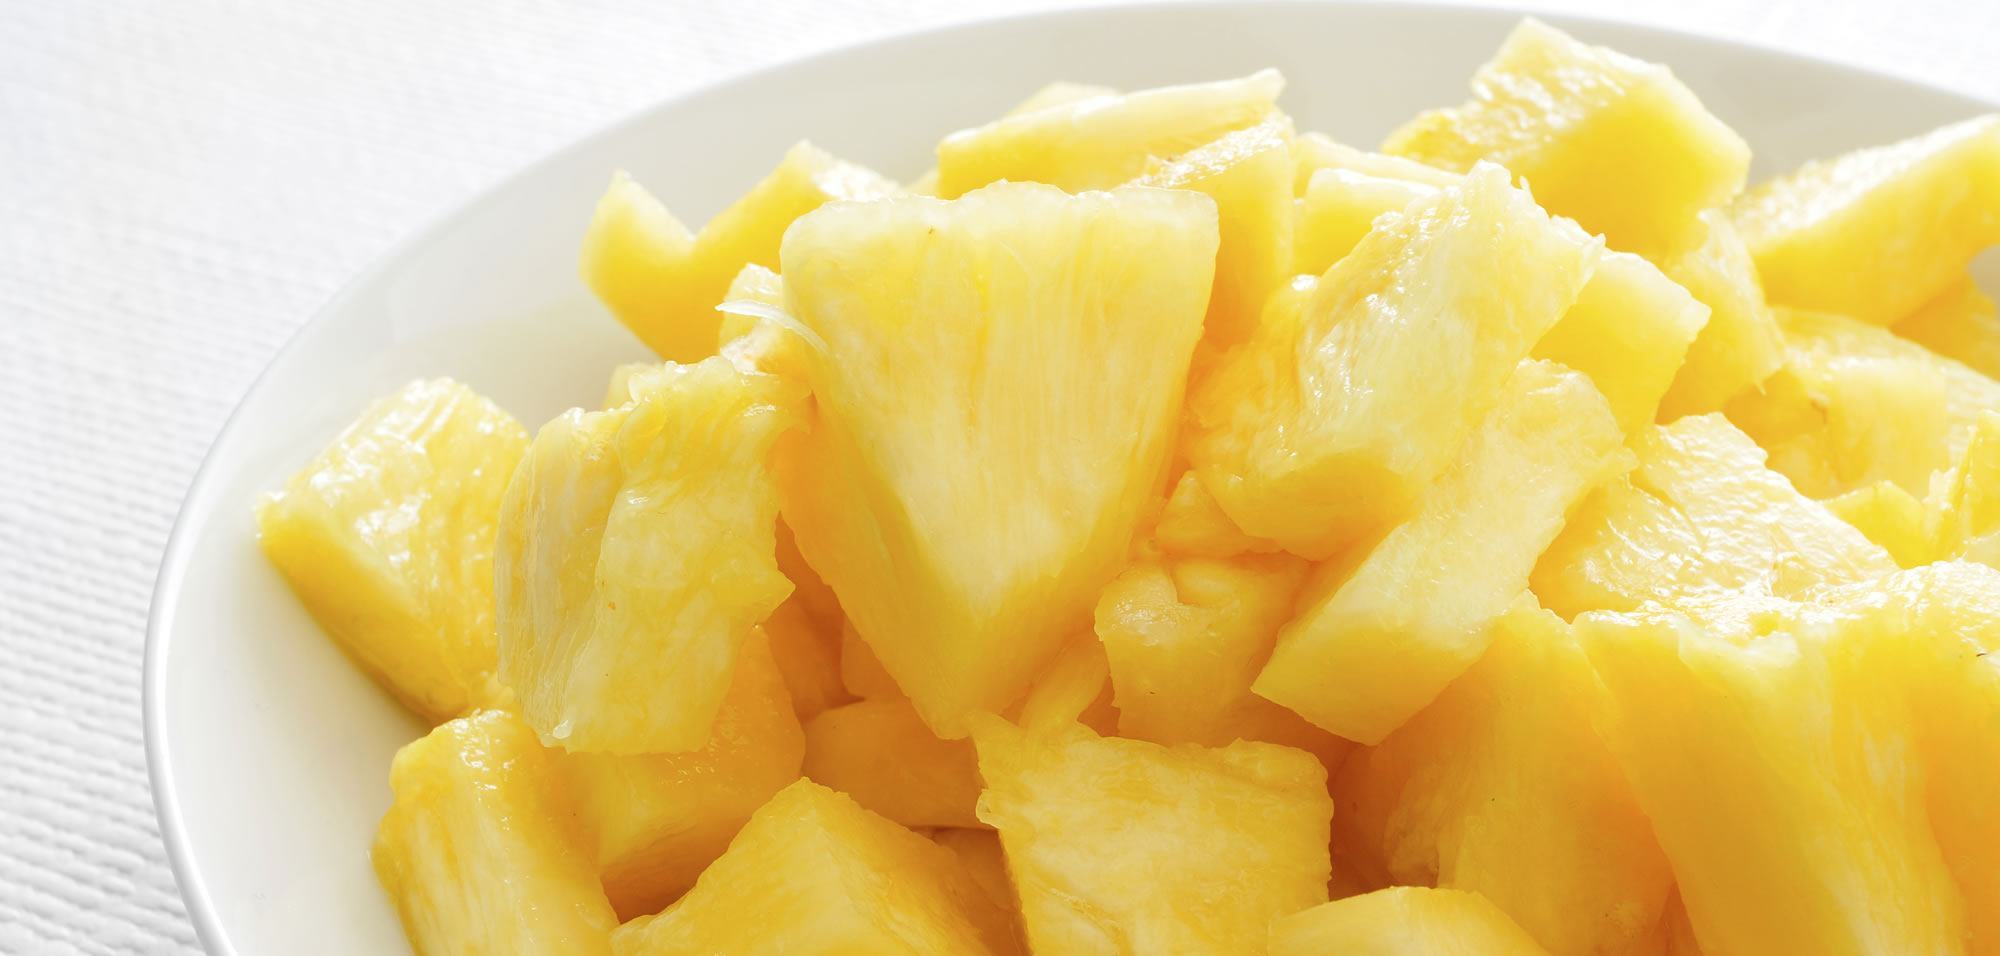 Healthy Pineapple Recipes for Weight Loss